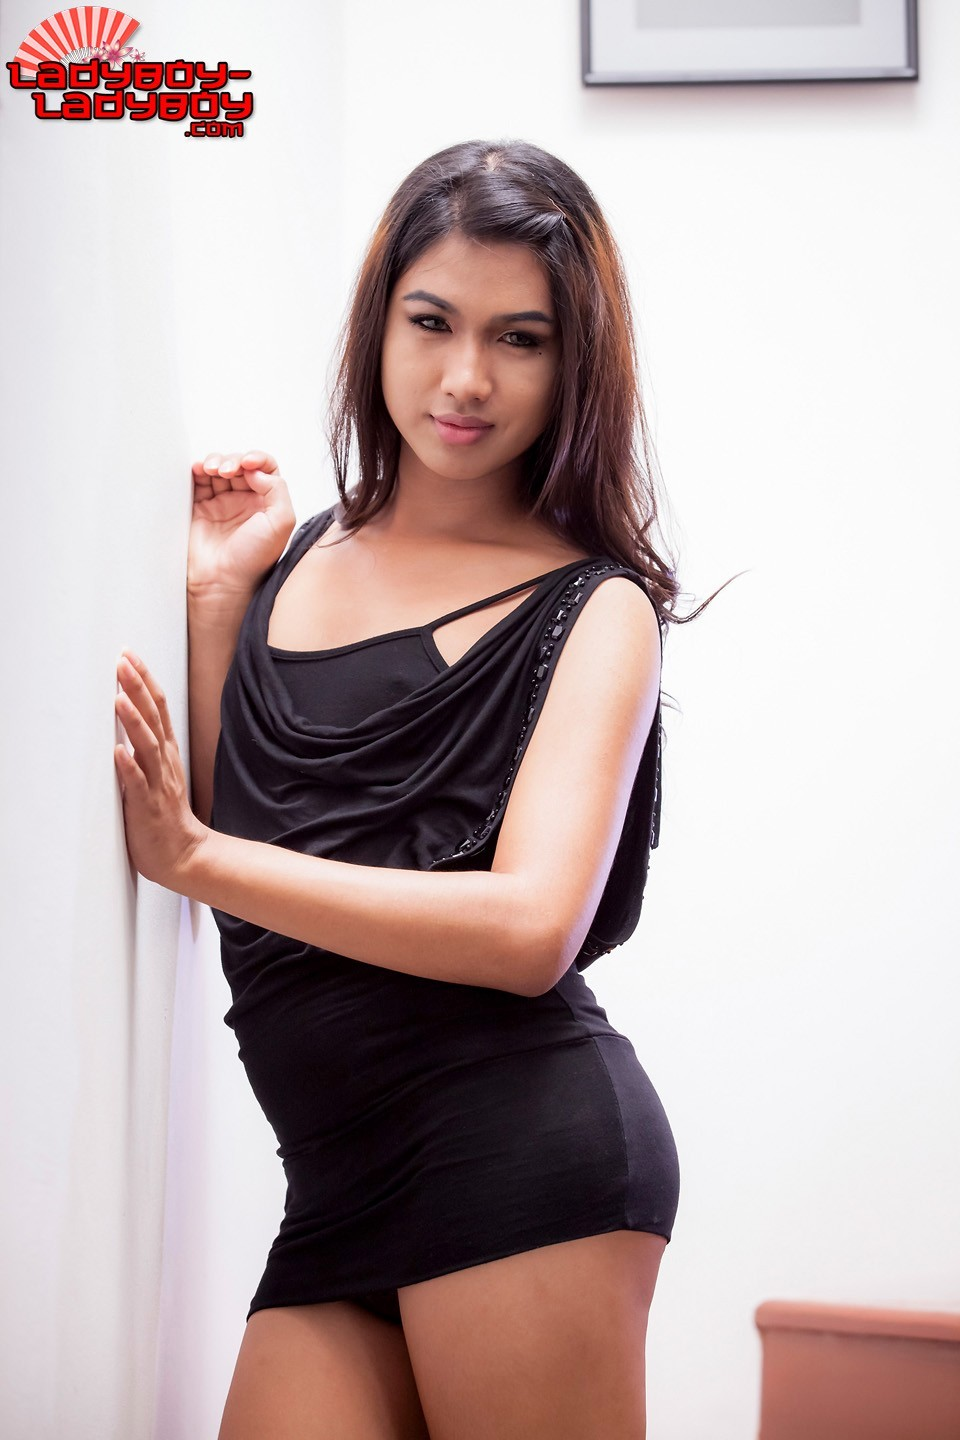 Perfect Pik Is A Provoking Bangkok Girl Who Is Fun To Be Around! She